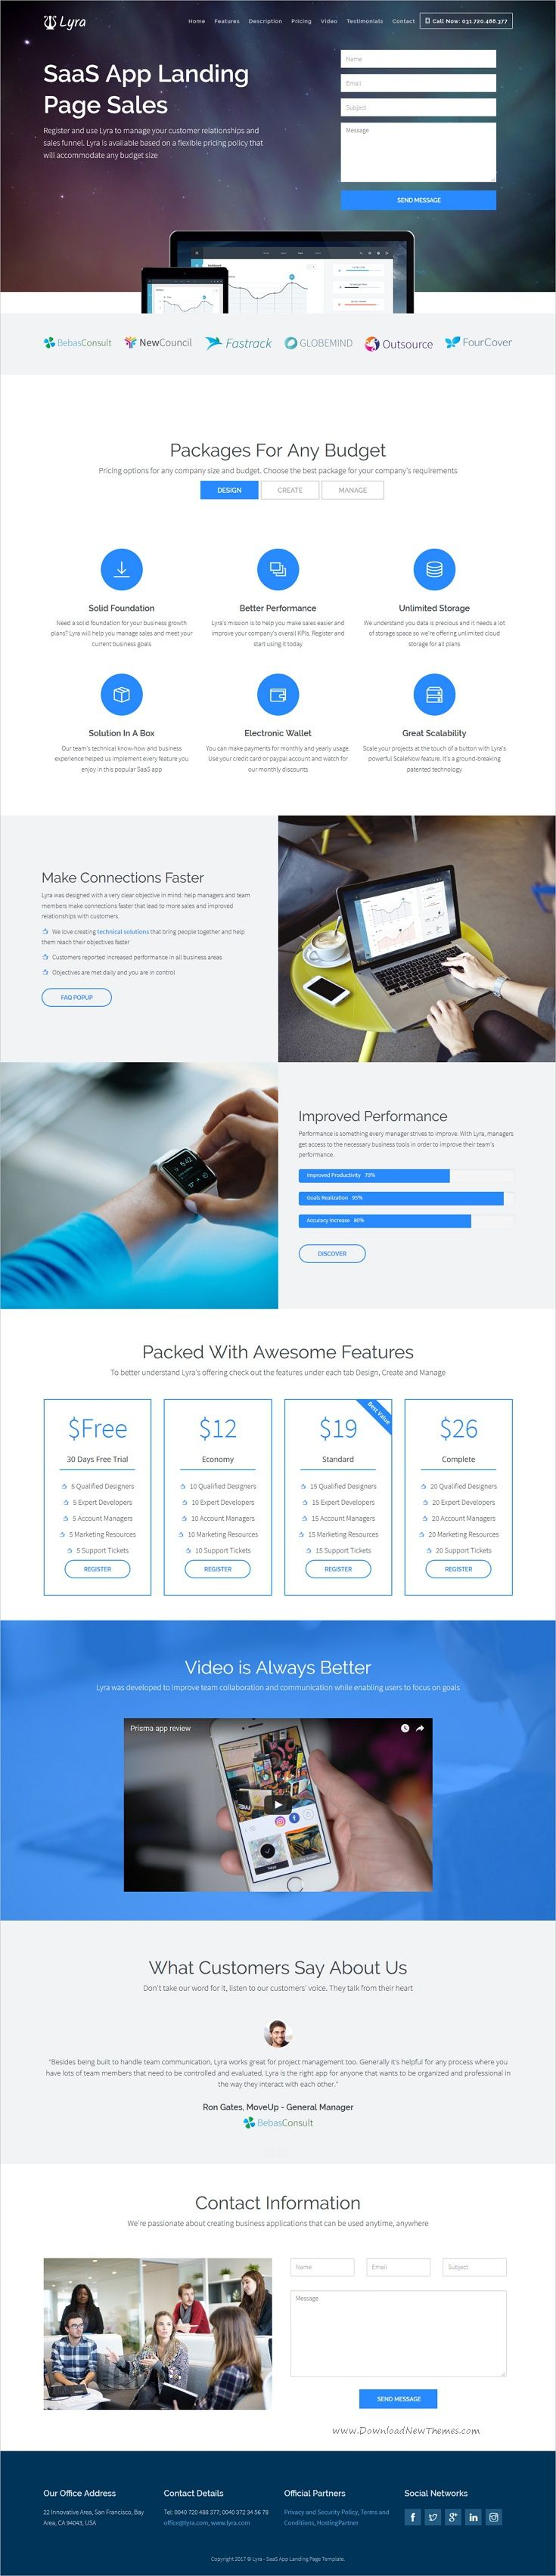 Lyra is clean and modern #design 8in1 responsive #Joomla template for multipurpose #app landing page website with page builder download now > https://themeforest.net/item/lyra-saas-app-landing-page-multipurpose-joomla-template-with-page-builder/19909055?ref=Datasata